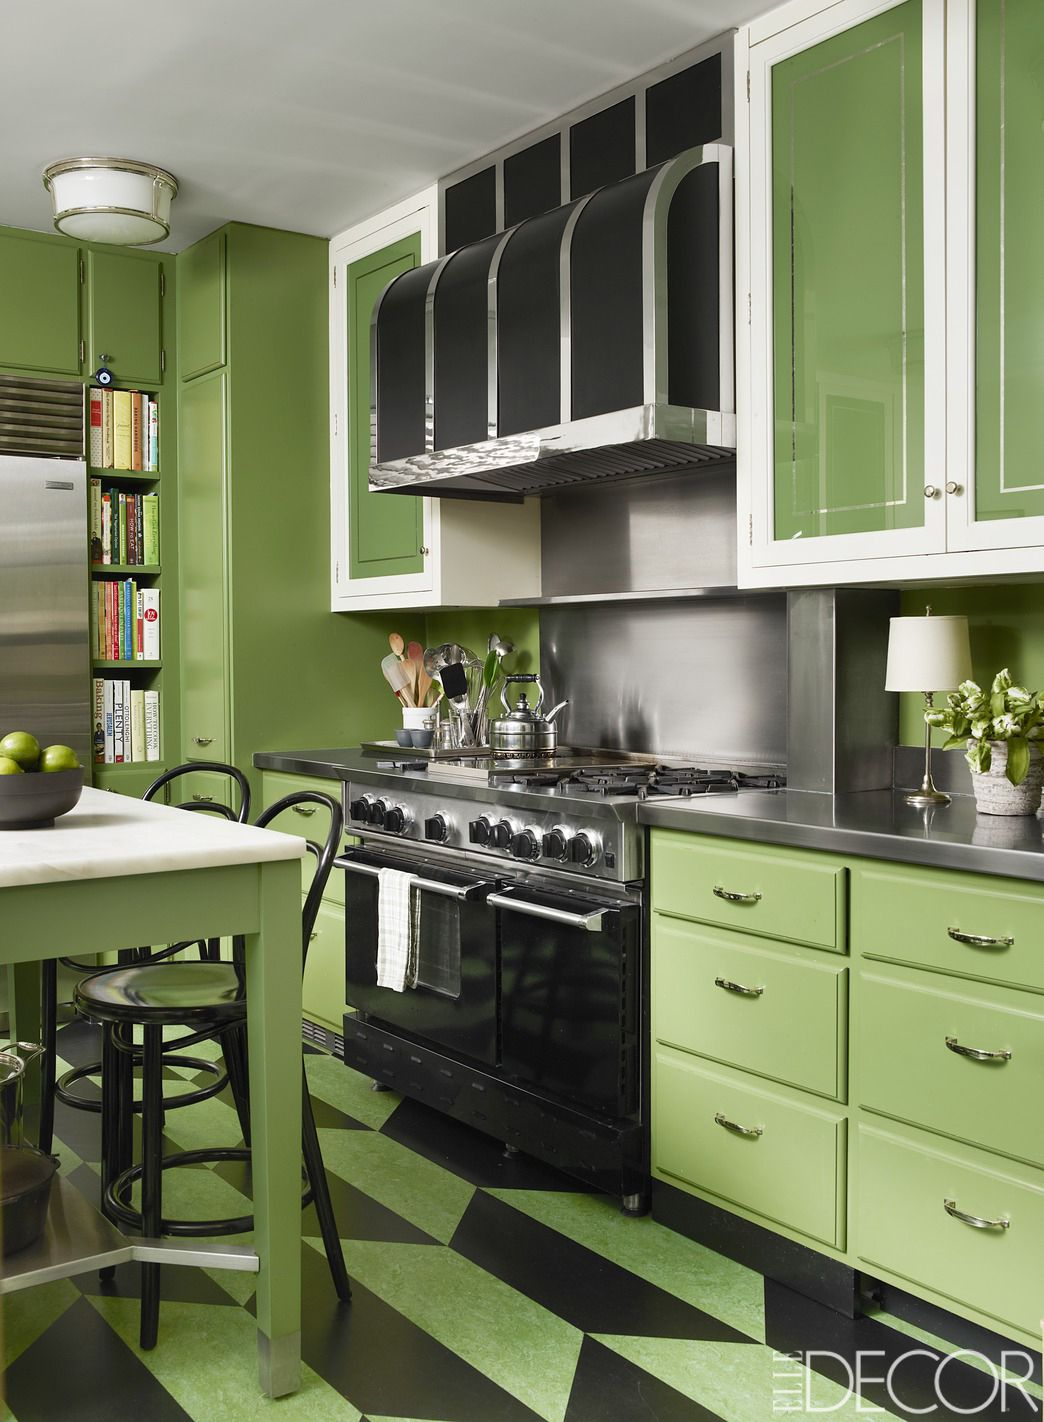 40 Small Kitchen Design Ideas - Decorating iny Kitchens - ^